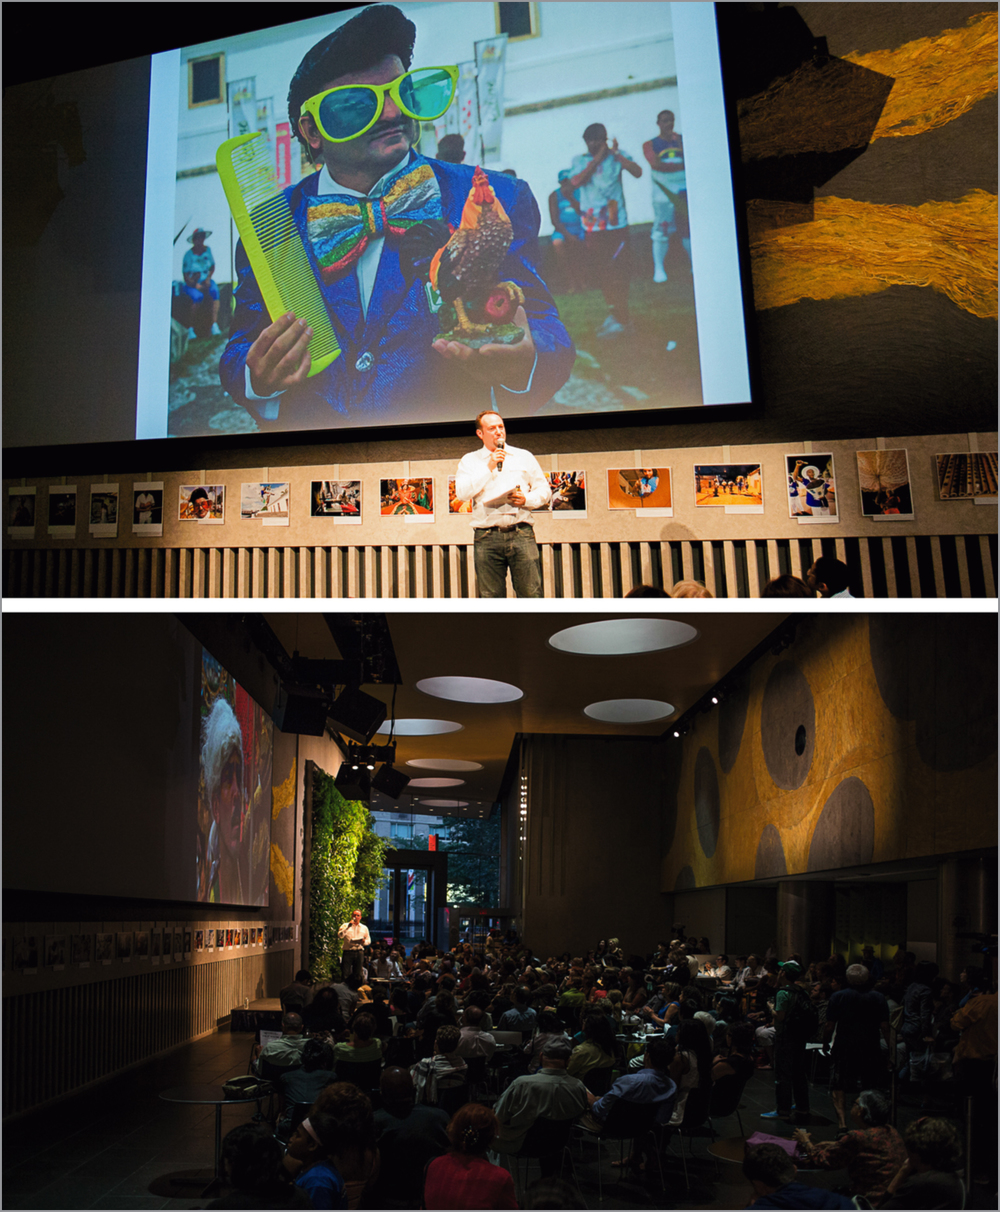 Lincoln Center, NY, July 2013 - Presentation to a full audience (300+) at exhibition opening, Lincoln Center, NY, with the presentation of the Maracatu Nação Estrela Brilhante